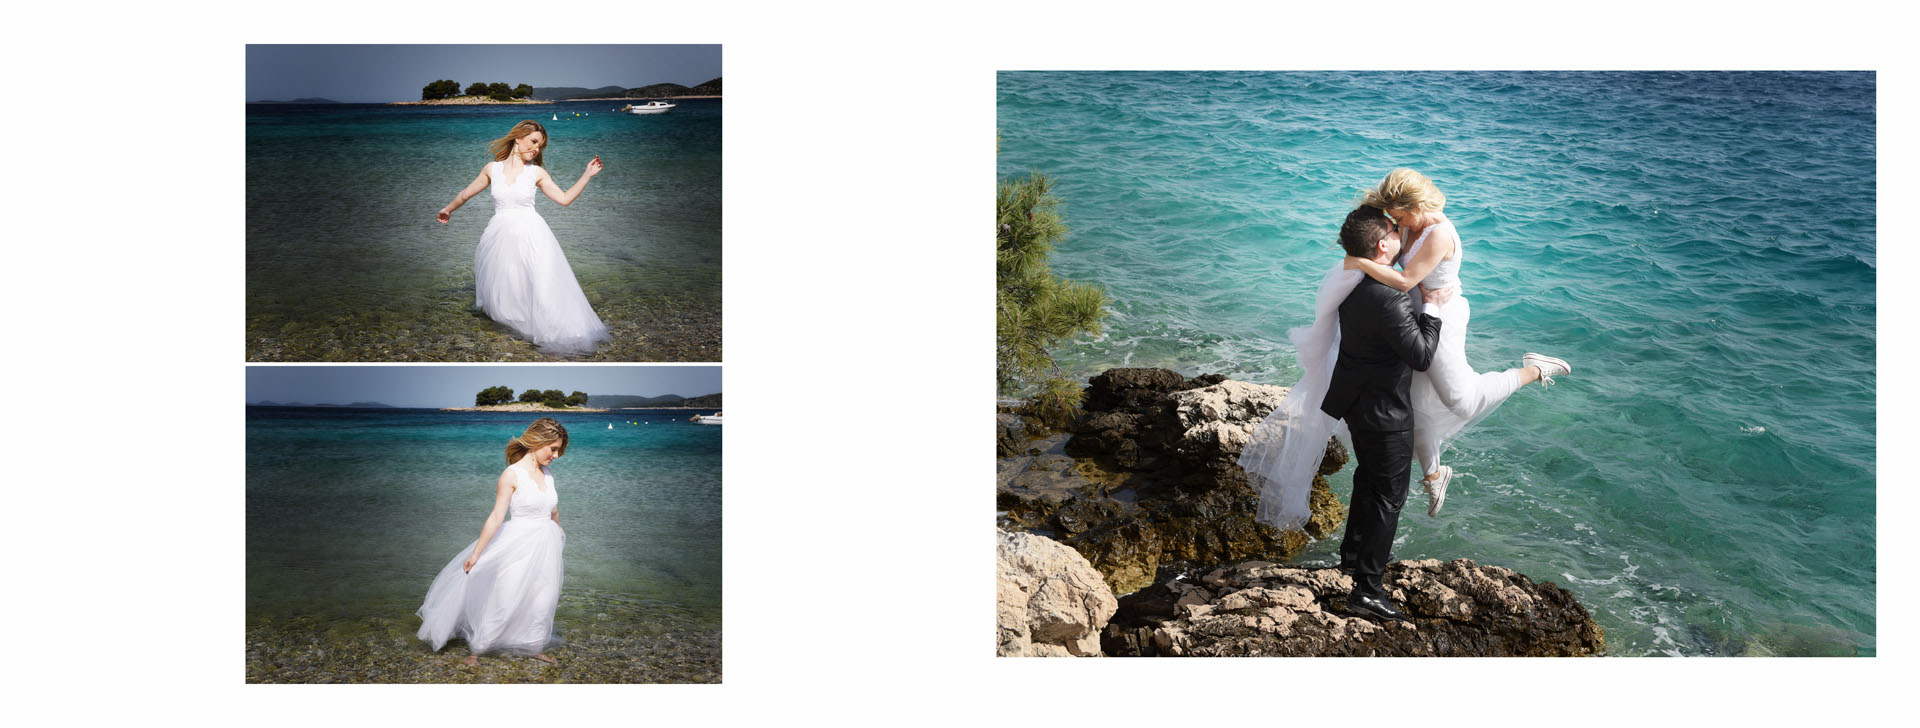 Gettzy Wedding Book Croatia